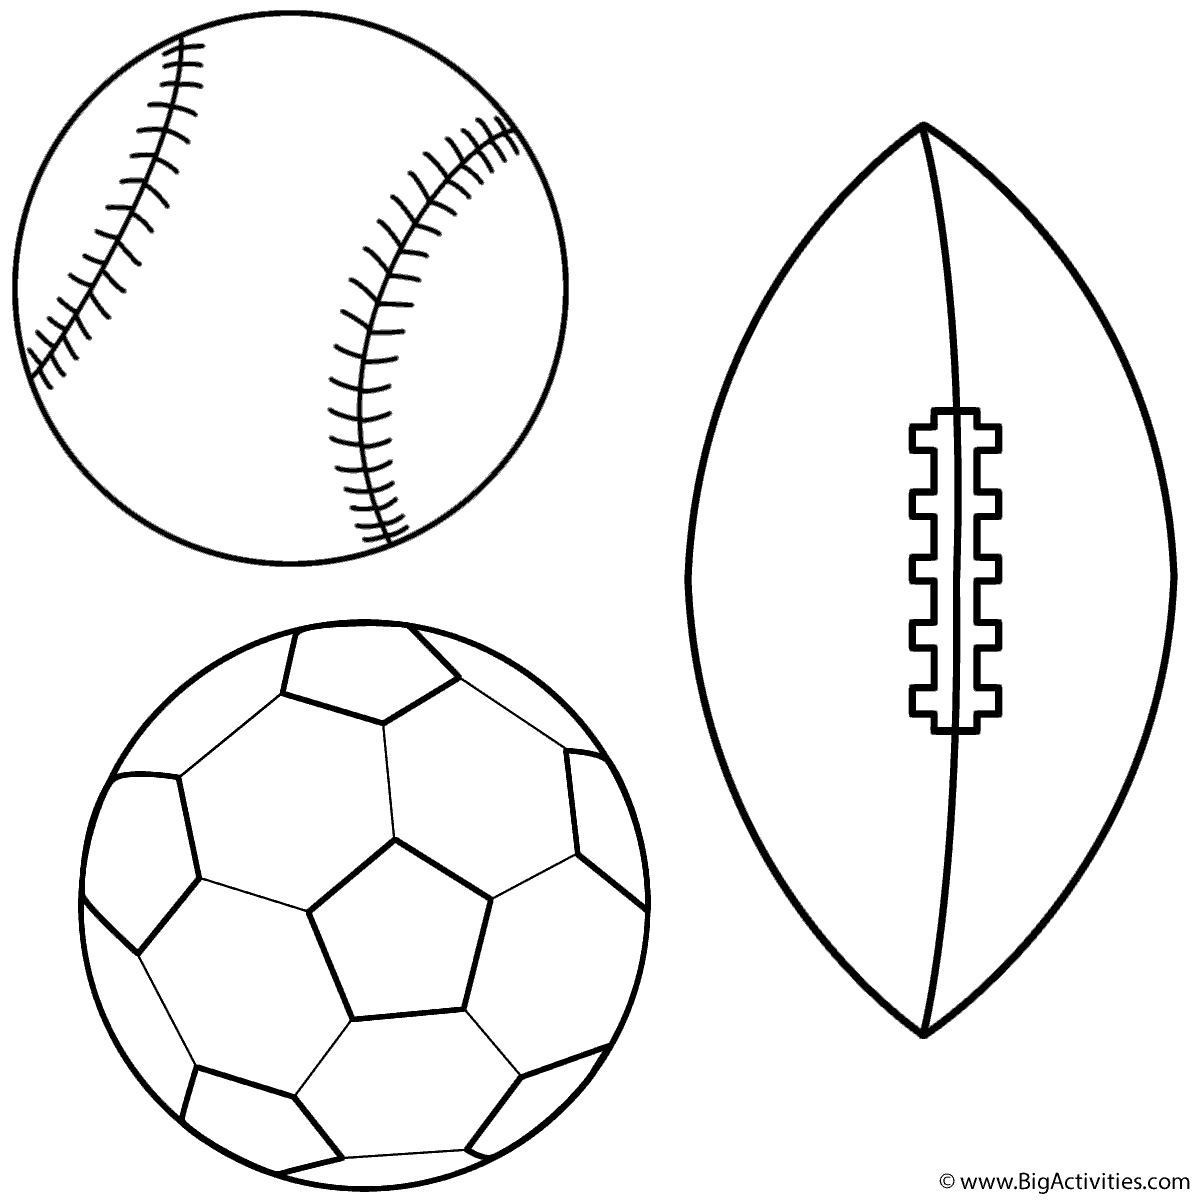 Coloring Pages Sports : Baseball soccer ball and football coloring page sports